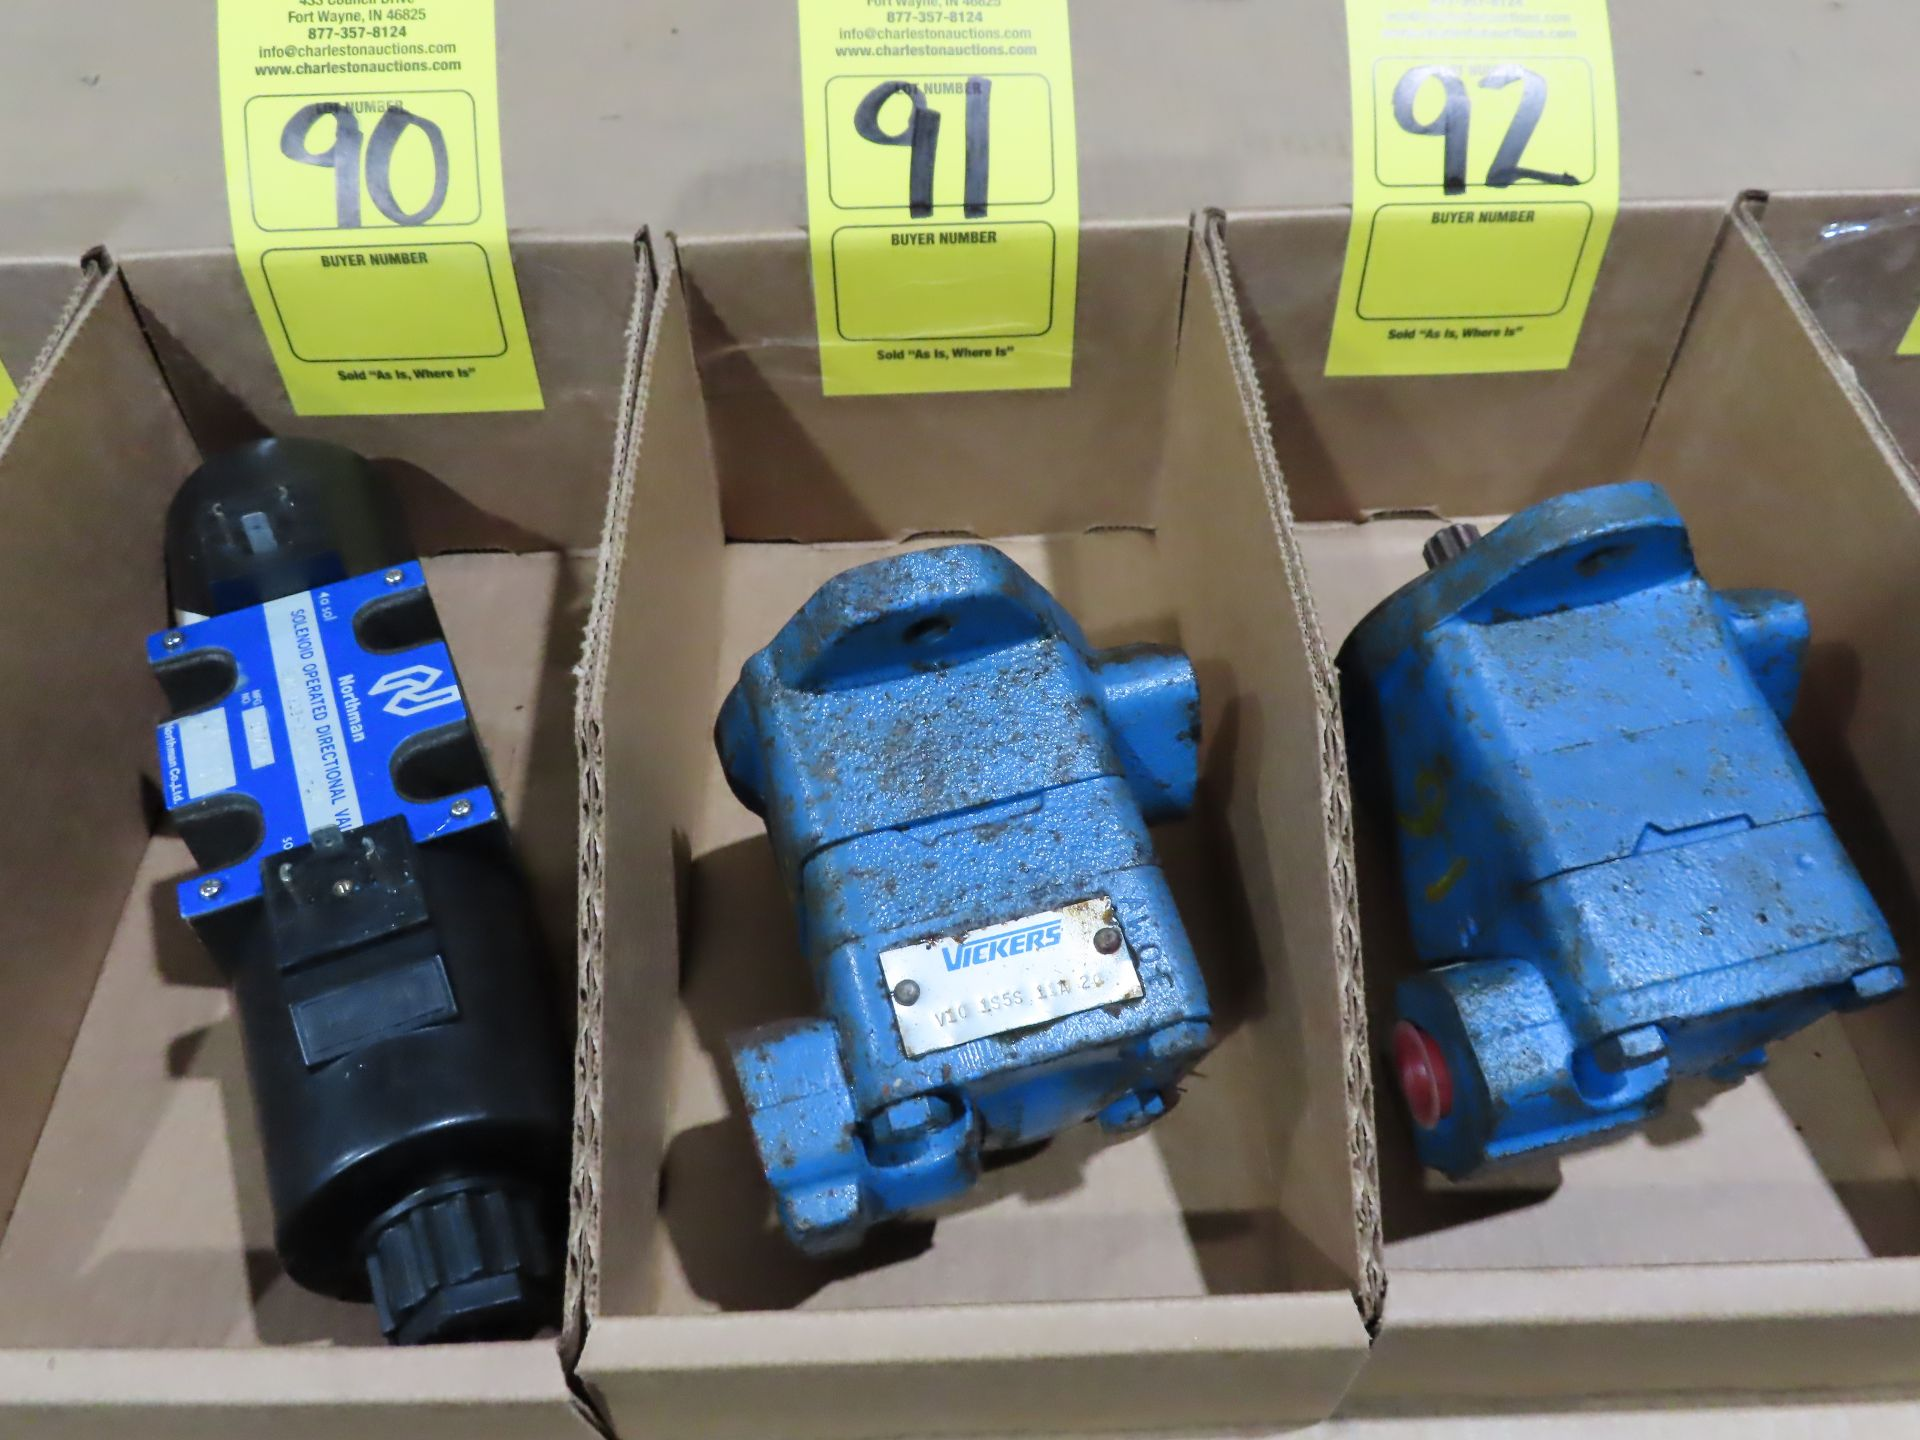 Lot 91 - Vickers pump model V10-1S5S-11A-20, as always, with Brolyn LLC auctions, all lots can be picked up